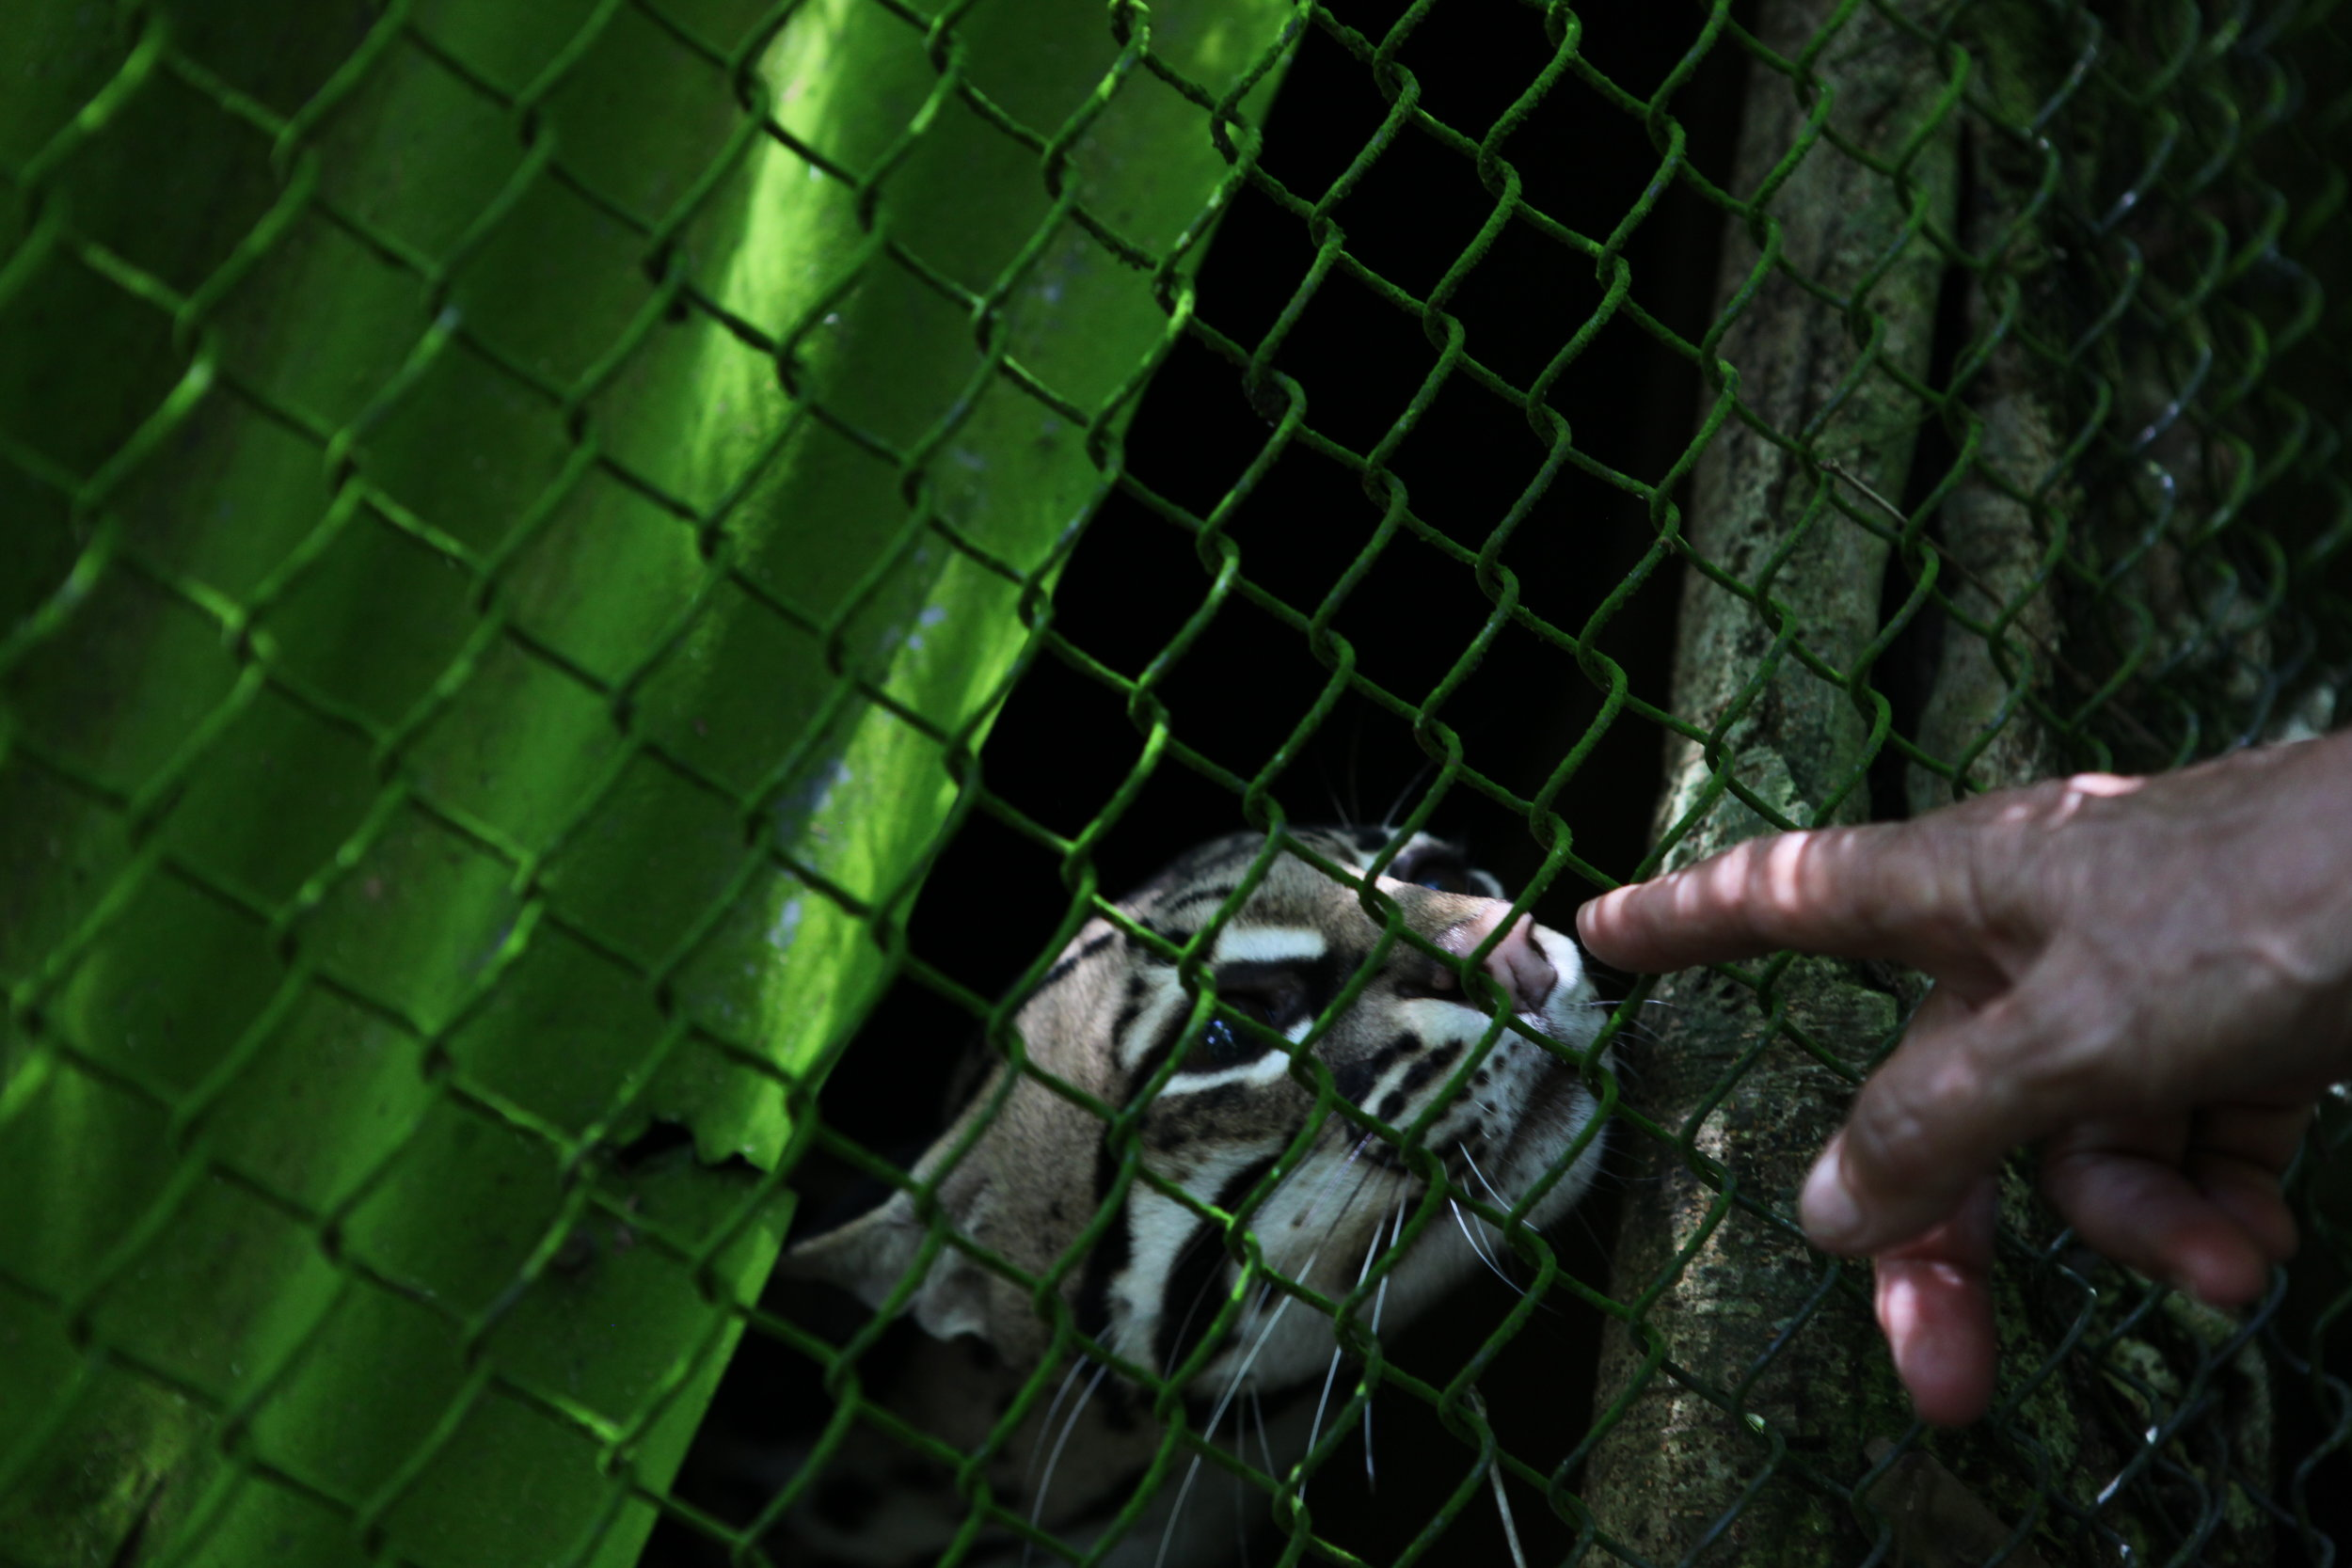 A rescued ocelot from the pet trade.